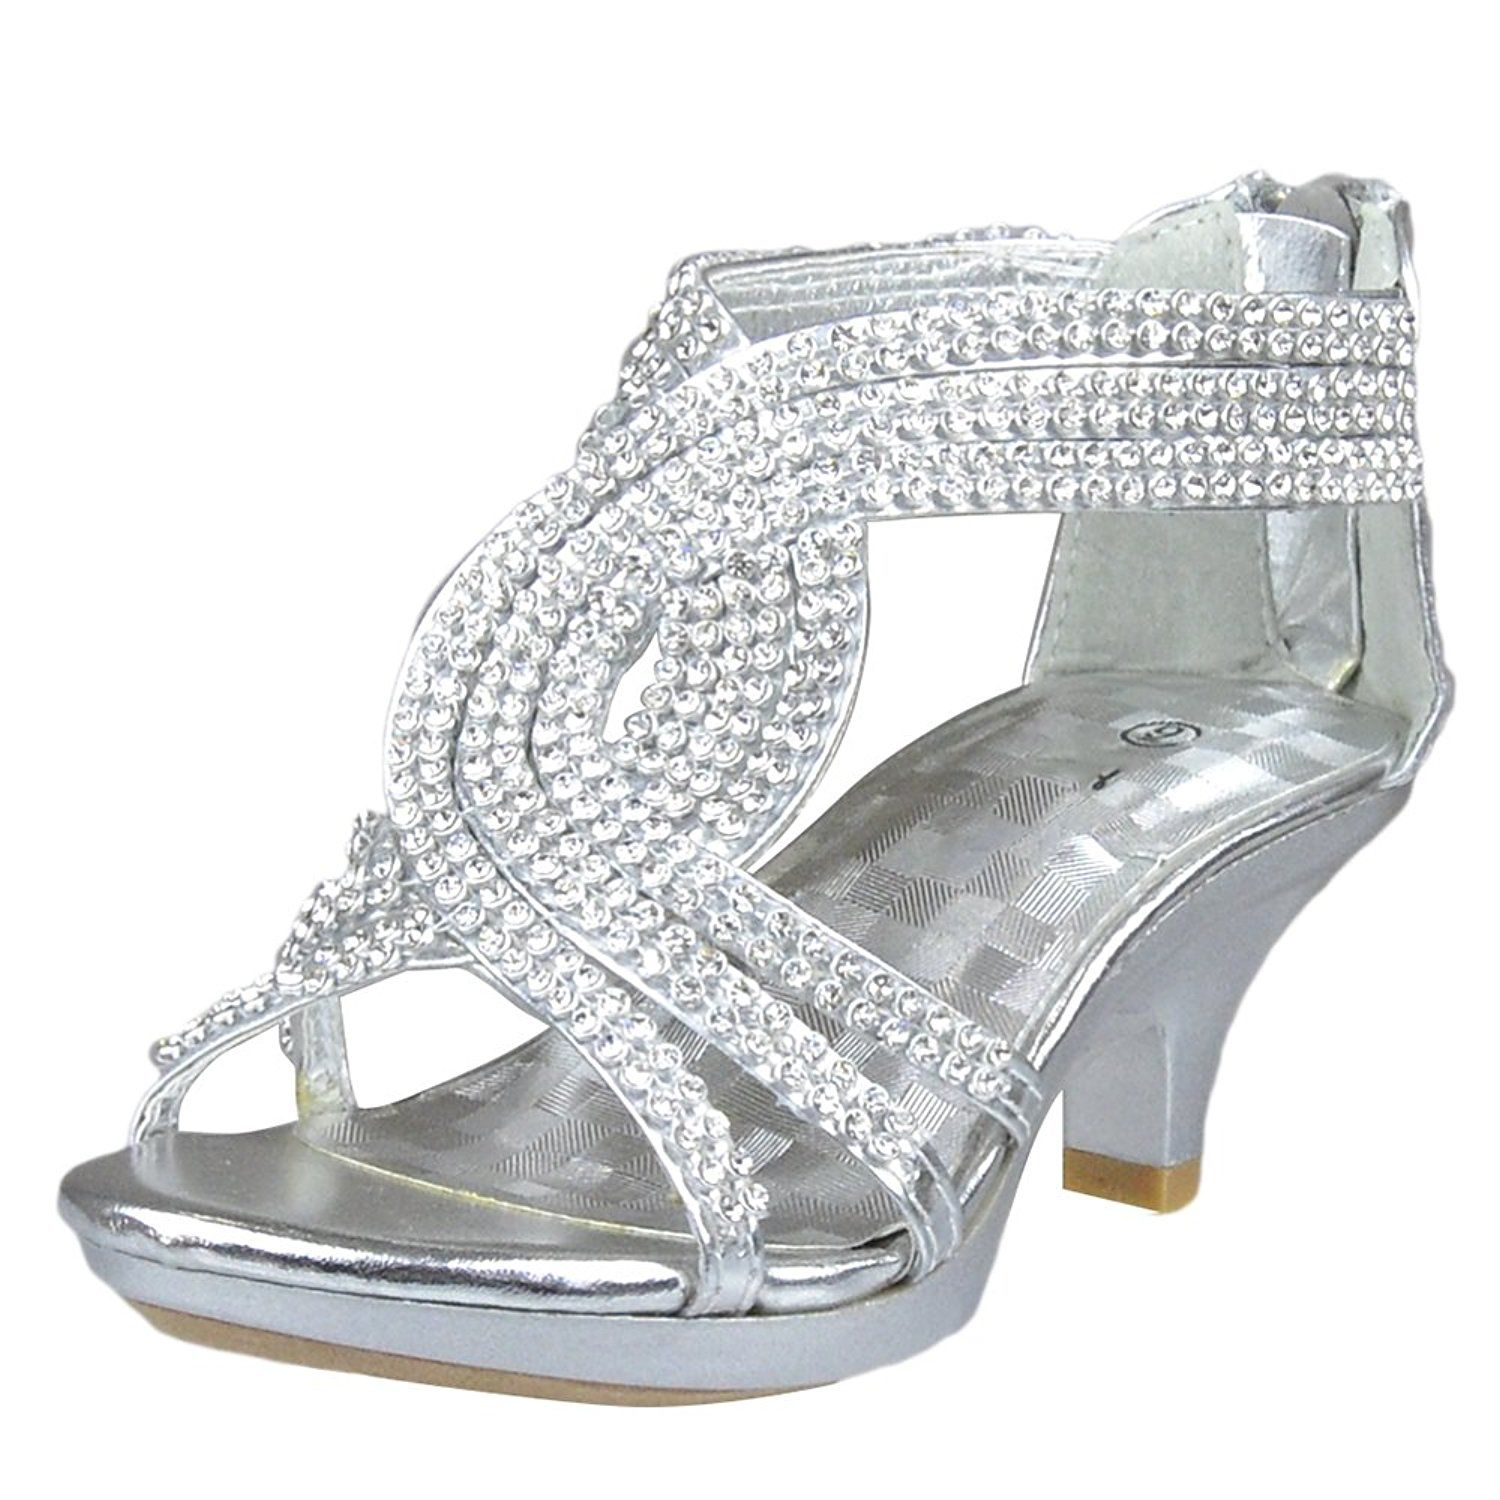 Kids Dress Sandals Embellished Overlay Twist Pageant High Heels Review More Details Here Girls Sanda Pageant High Heels Flower Girl Shoes Girls Dress Shoes